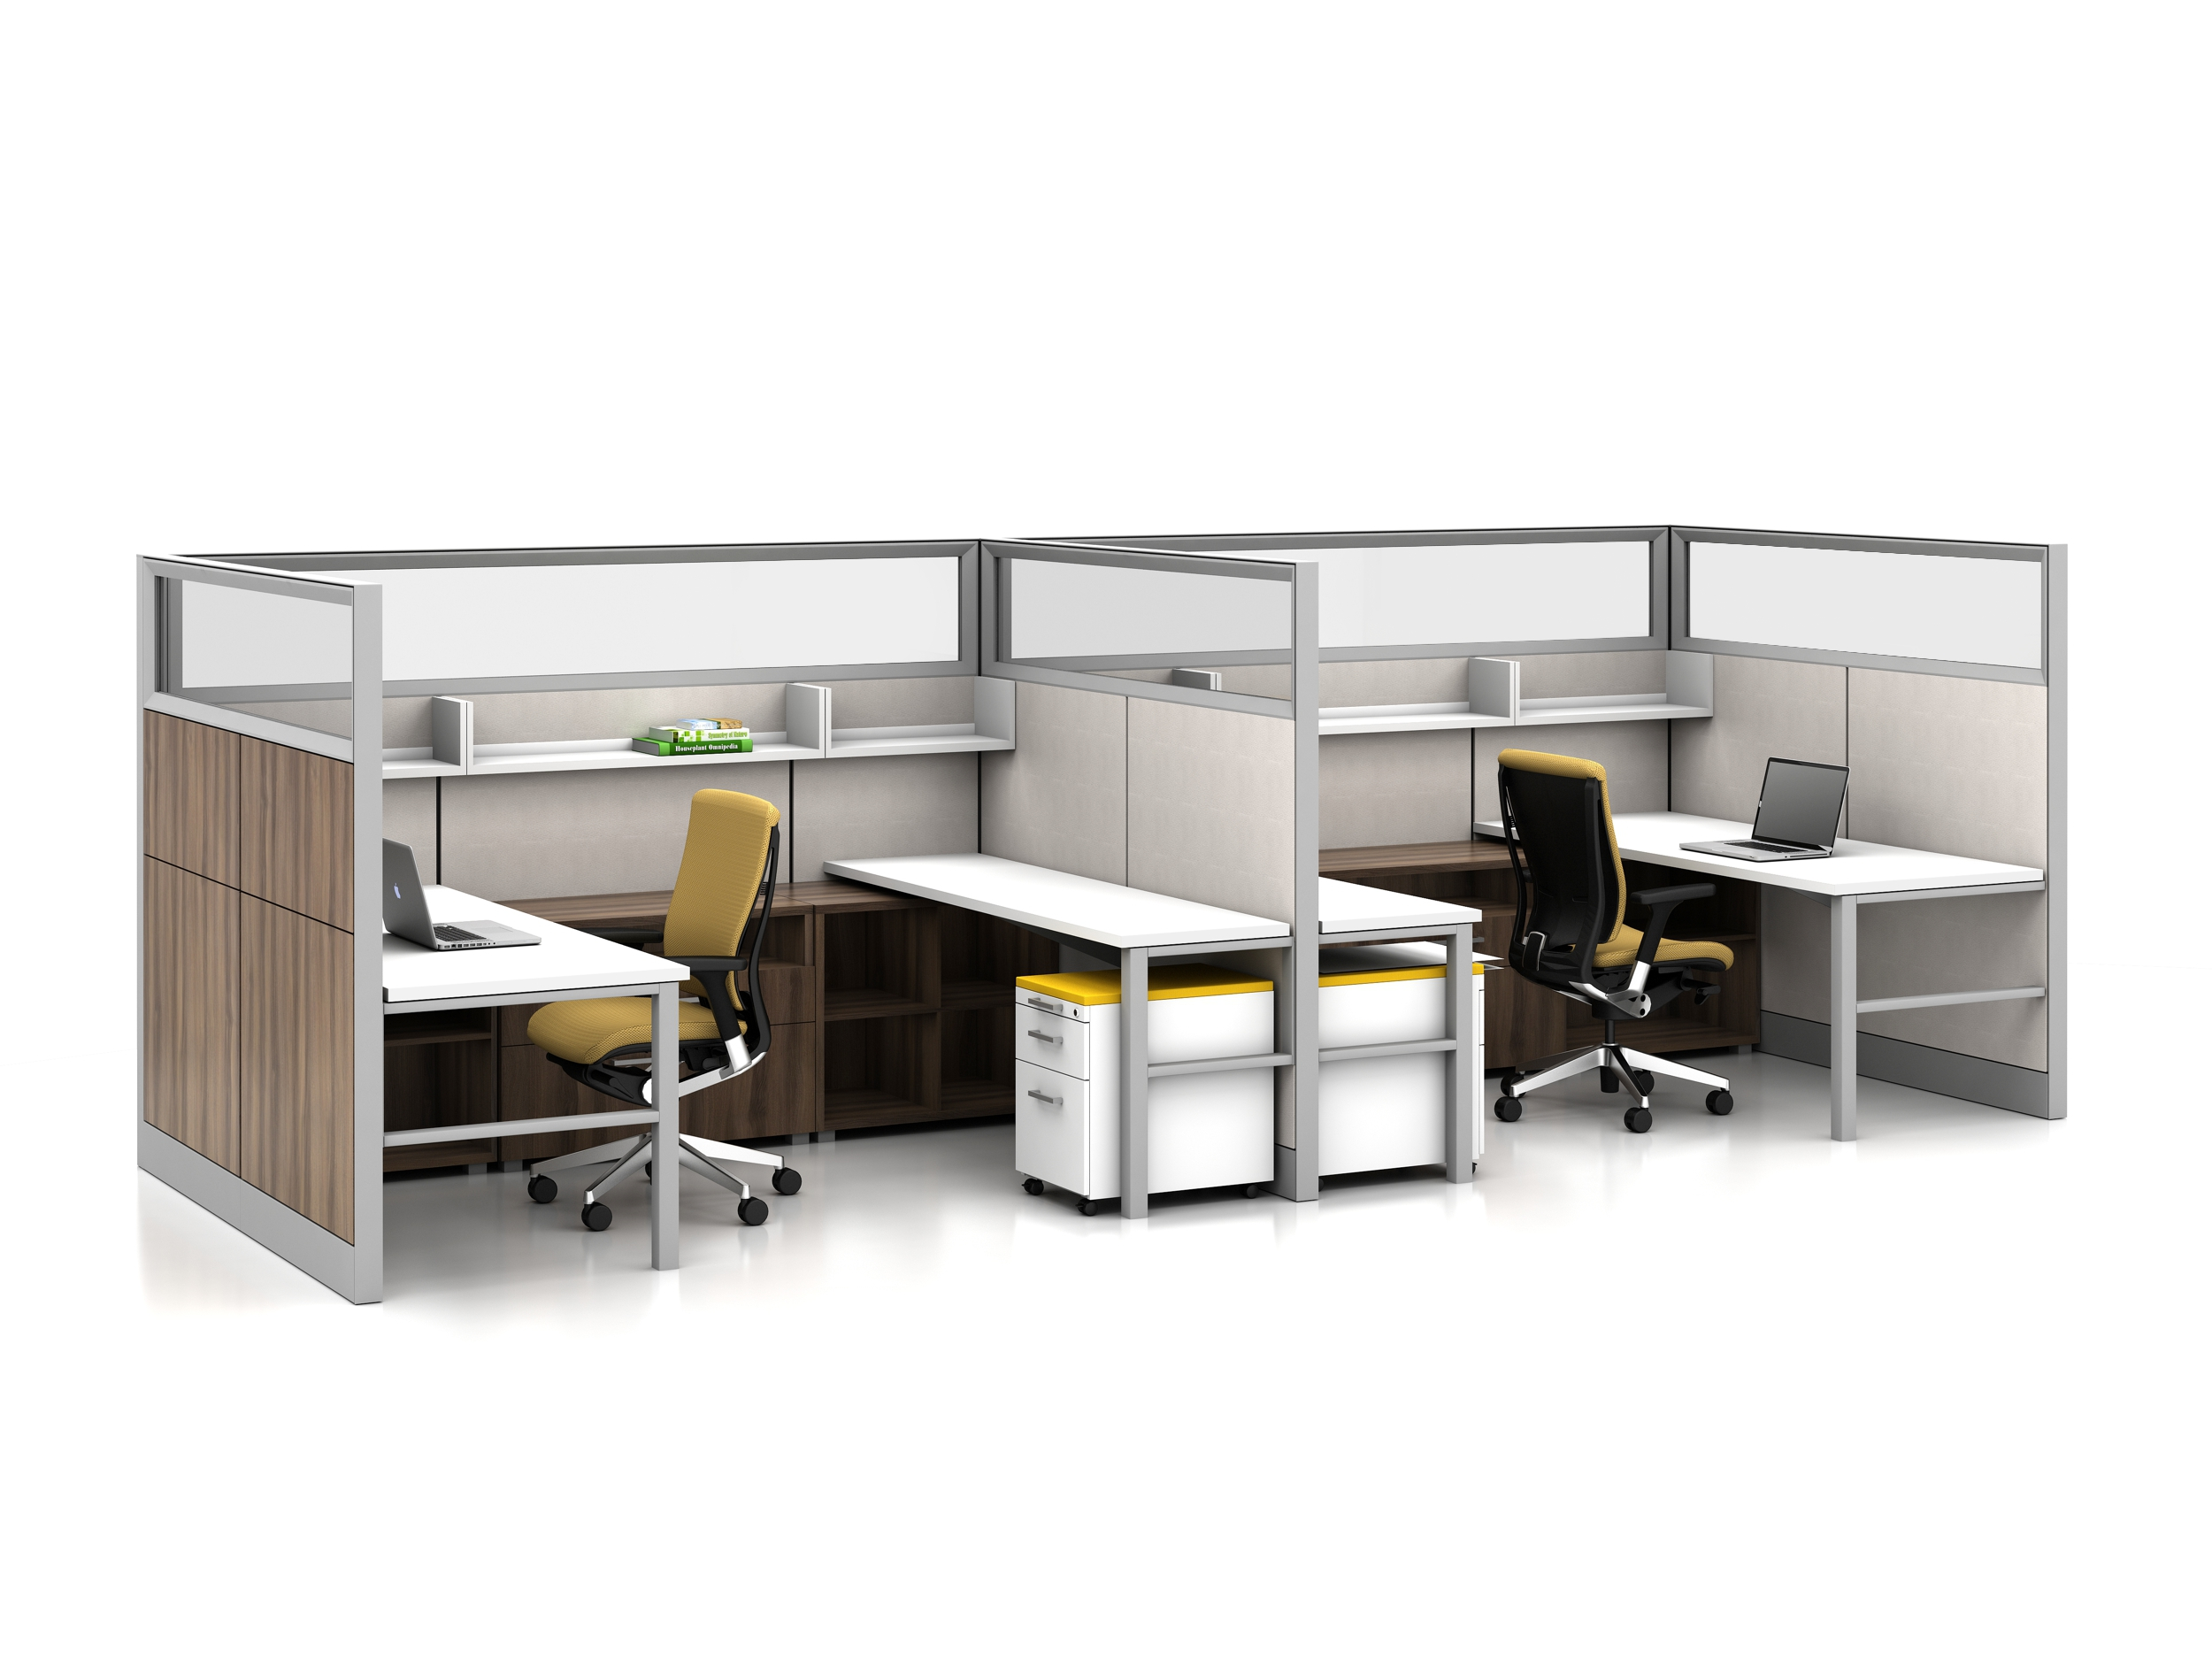 product galleries impact office interiors